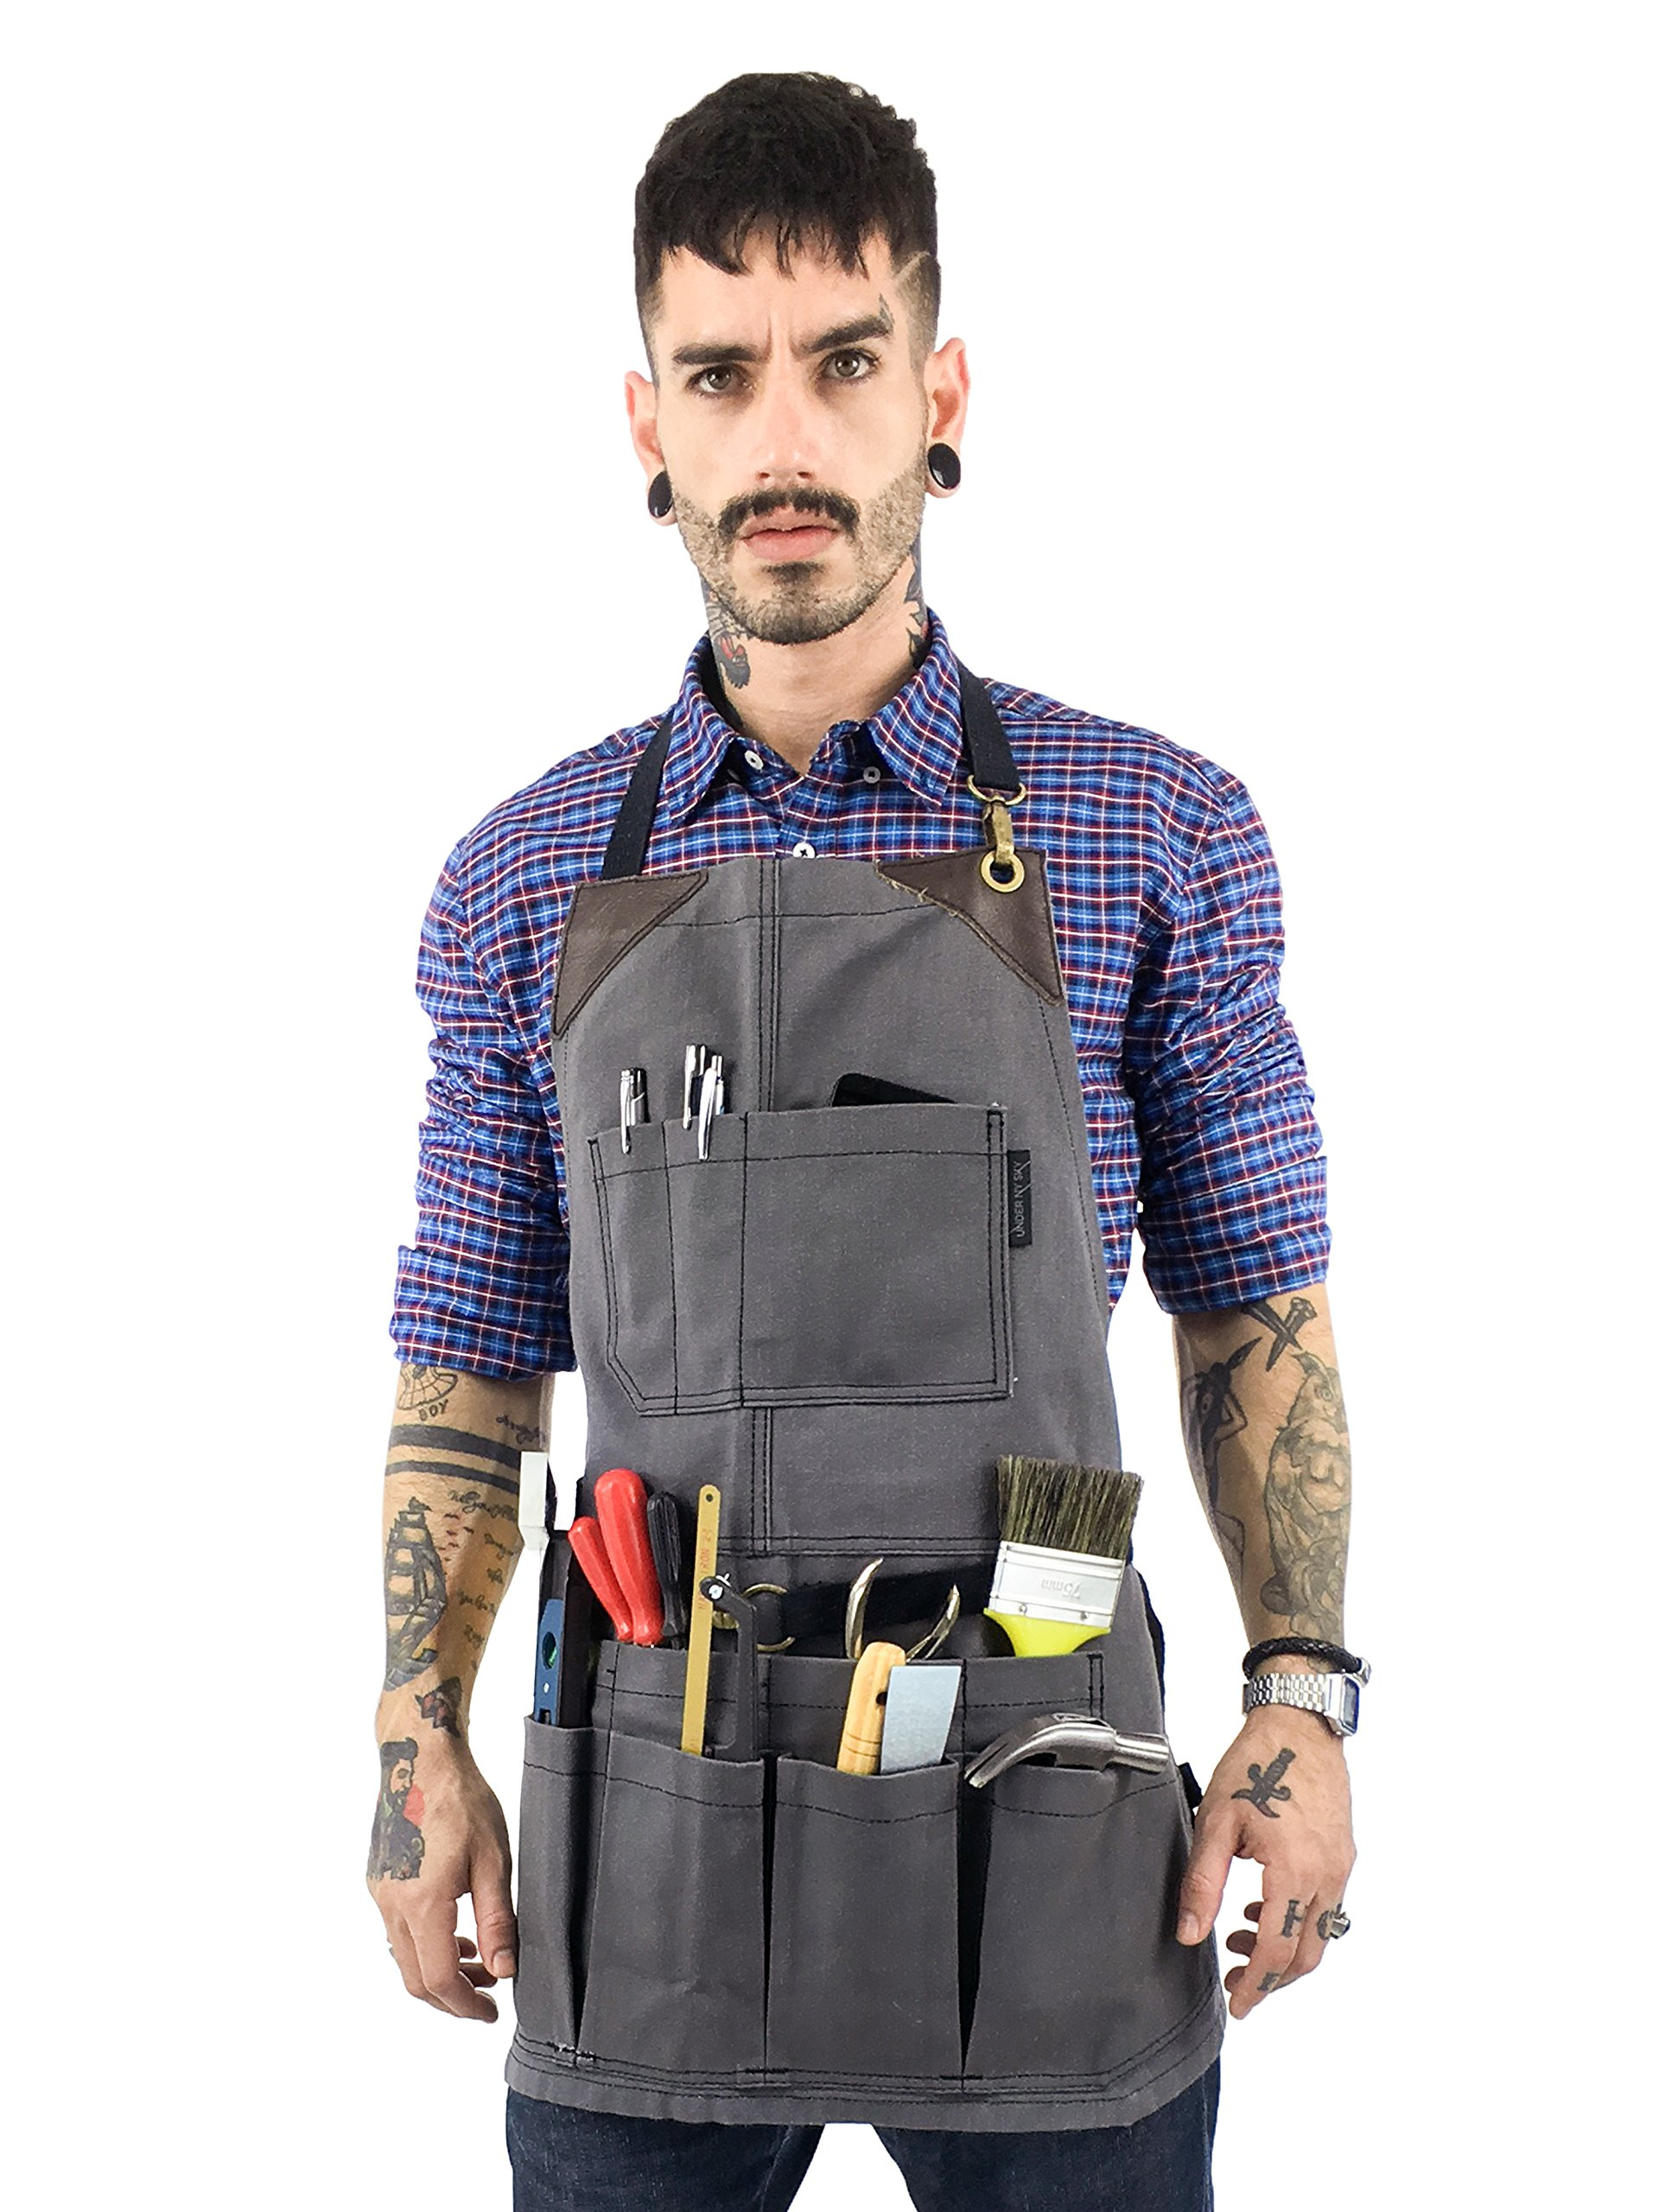 Under NY Sky Tool Gray Apron – Heavy-Duty Waxed Canvas, Leather Reinforcement, Extra Pockets – Adjustable for Men and Women – Pro Mechanic, Woodworker, Blacksmith, Plummer, Electrician, Welder Aprons